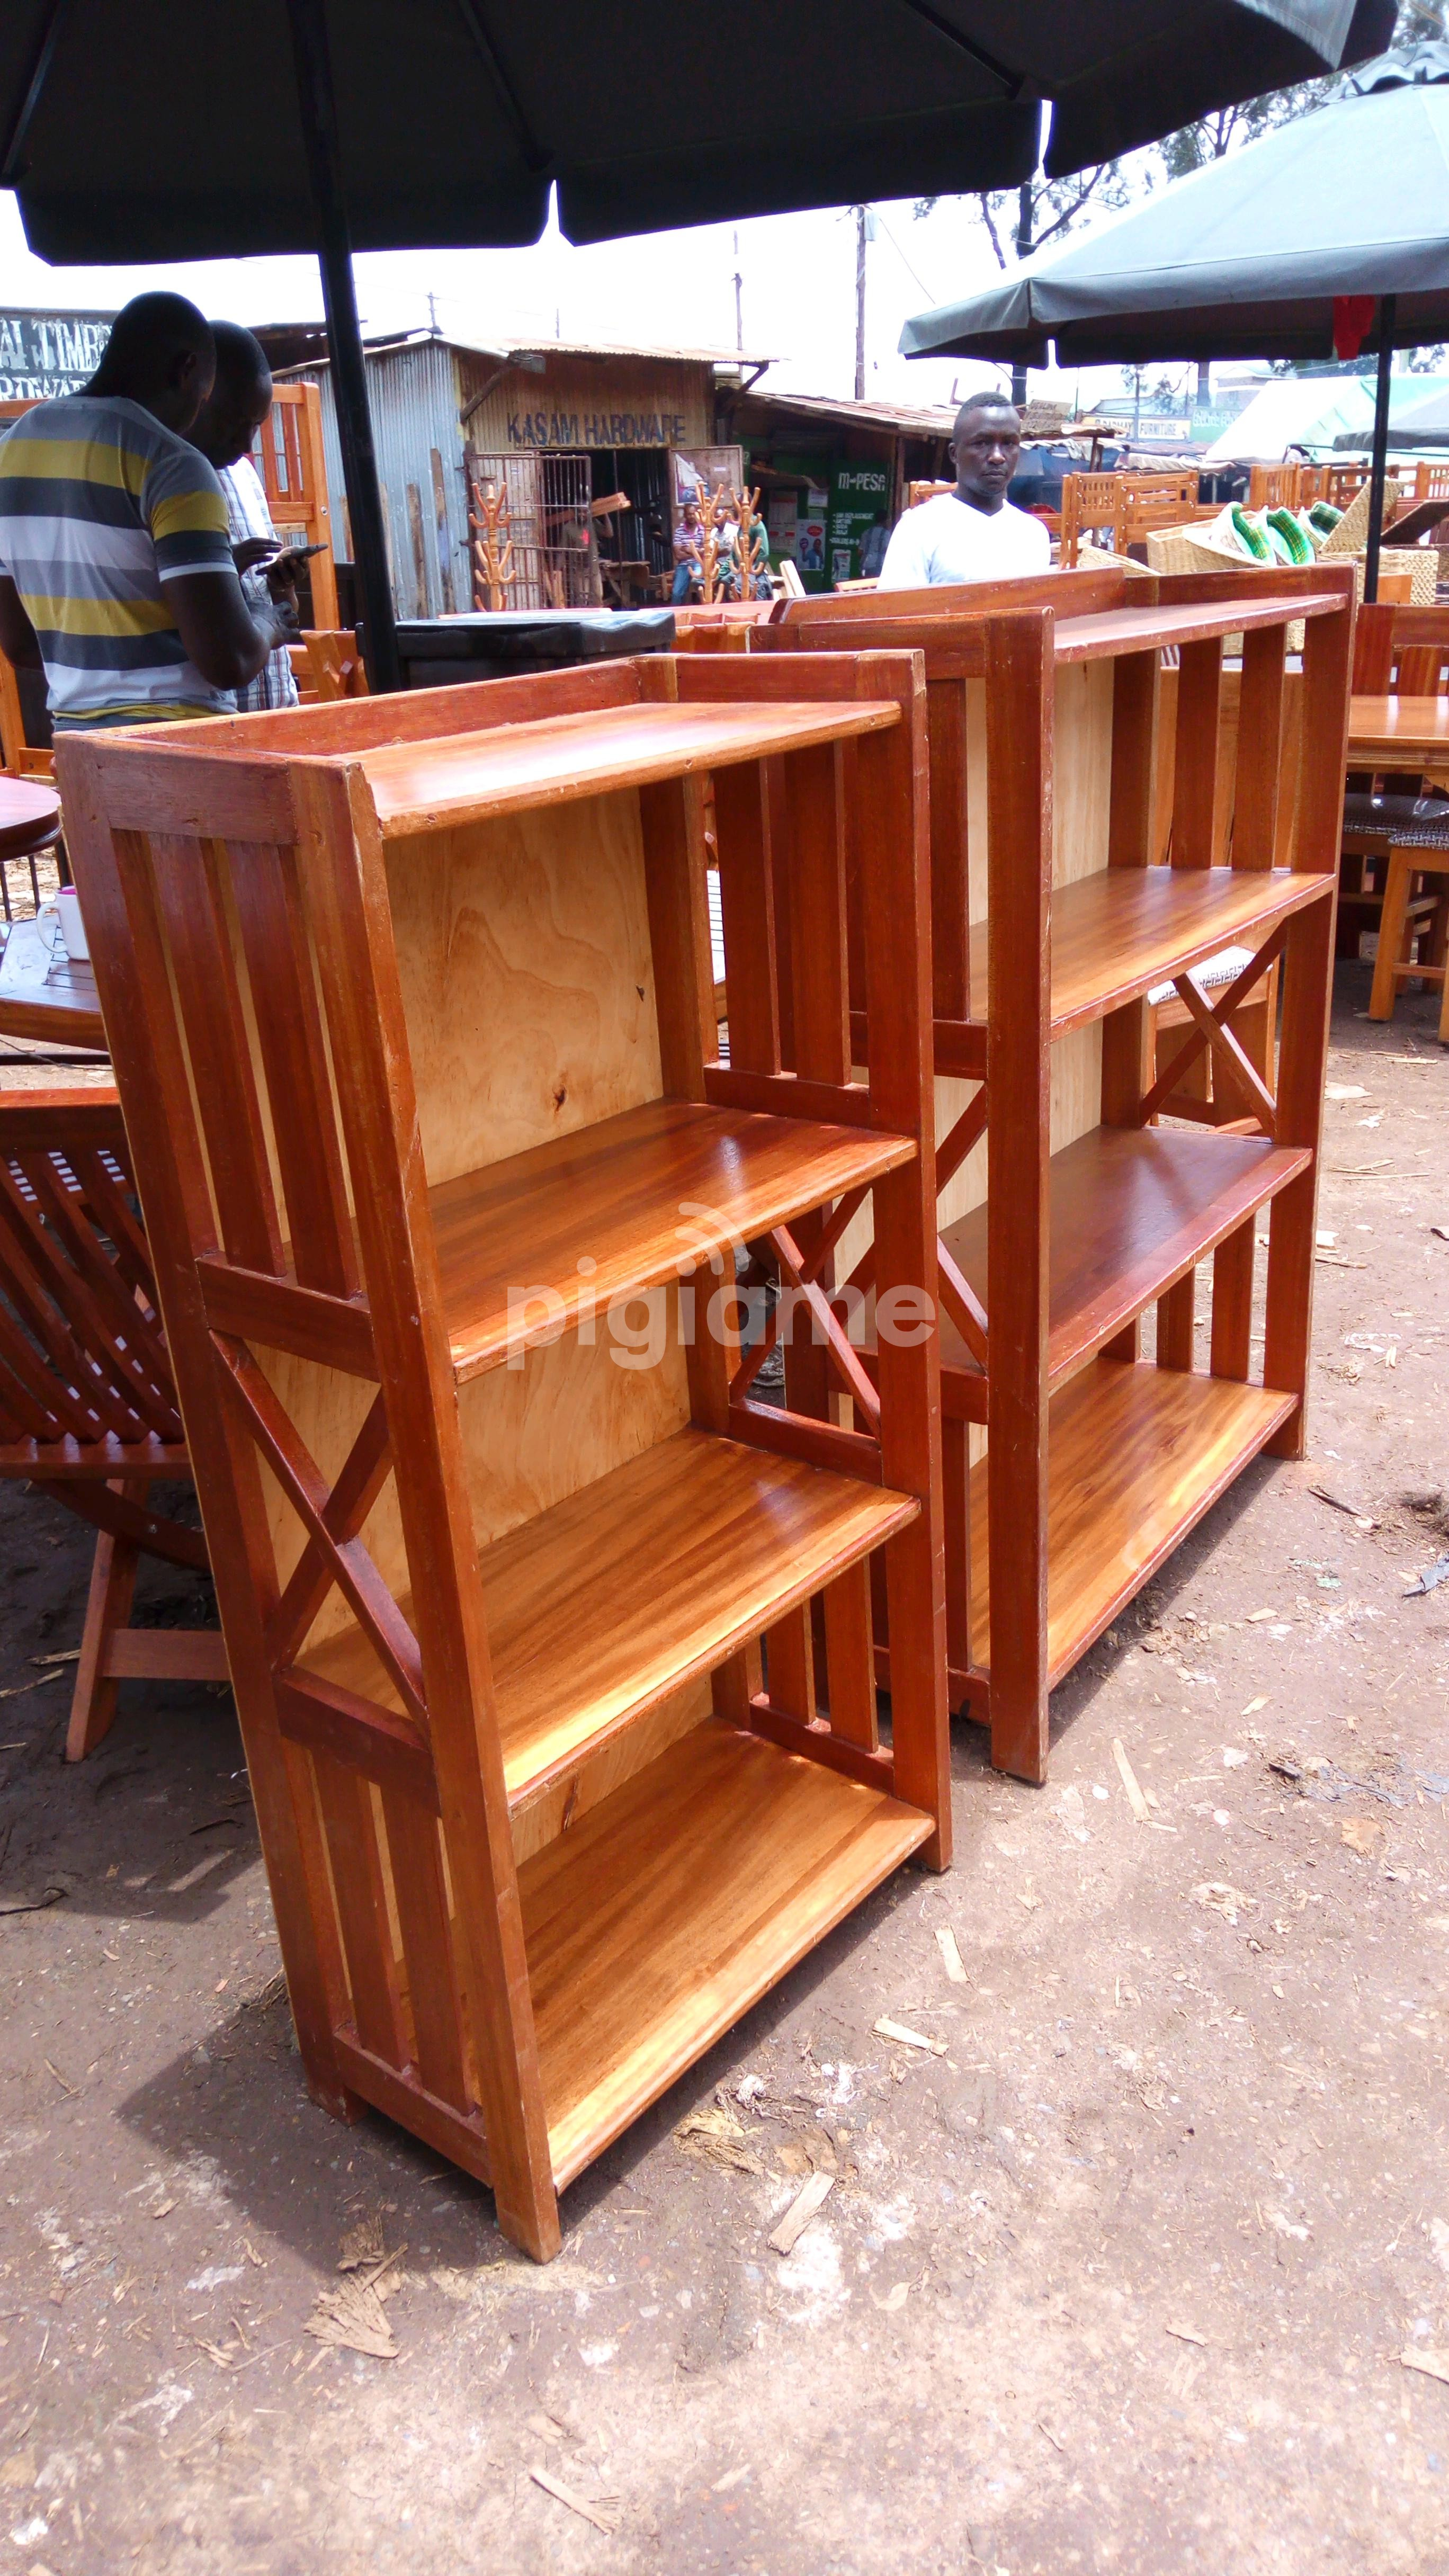 New Book shelves at KSh 6,500